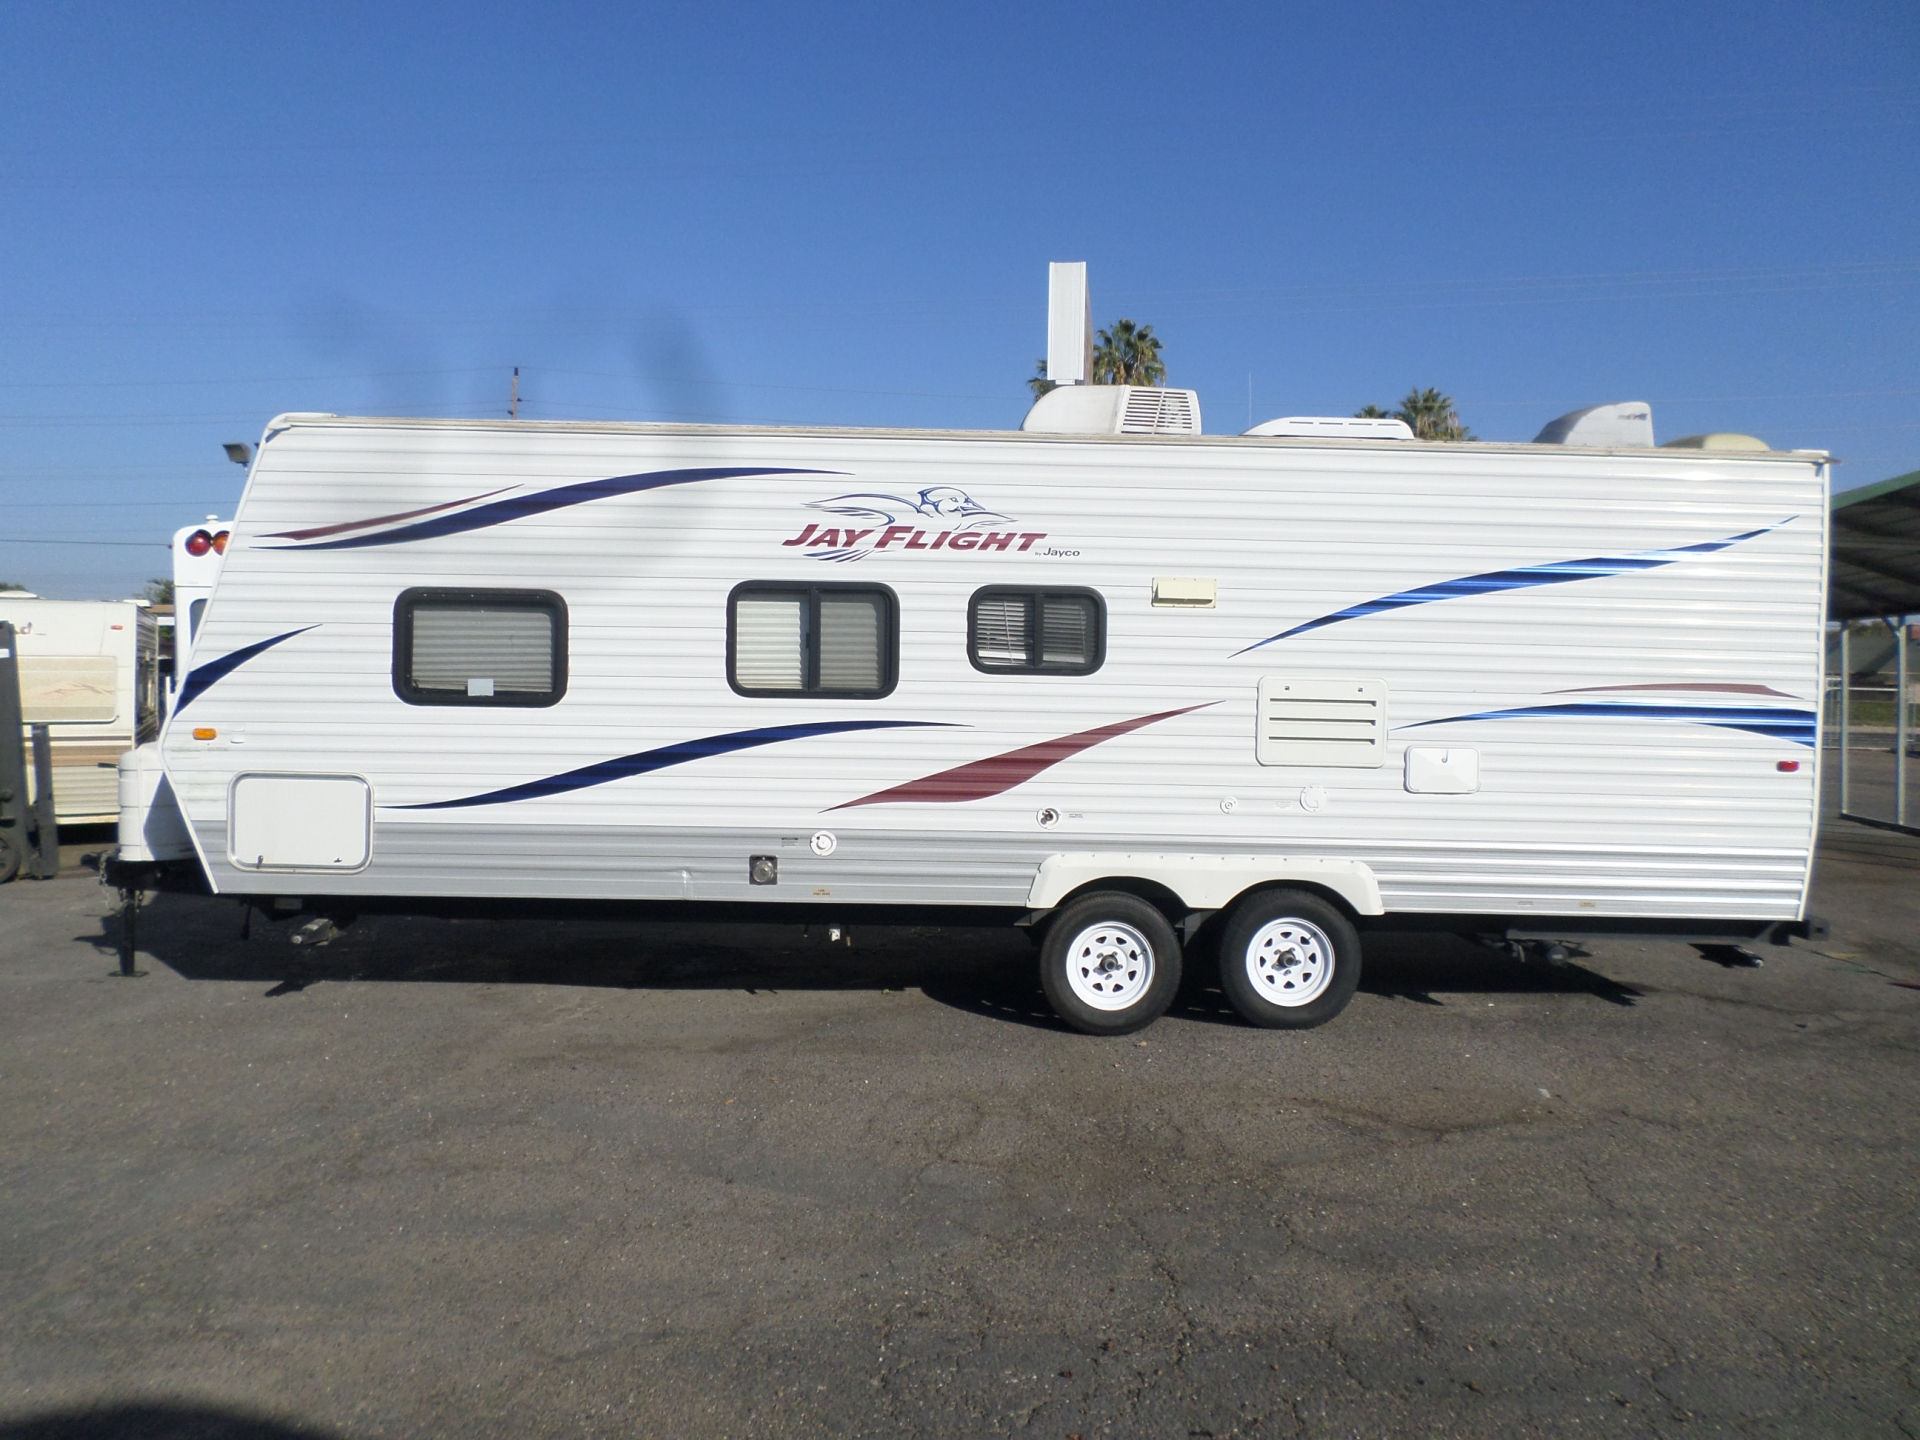 2010 Jayco Travel Trailer Jayflight 26BH Bunk House